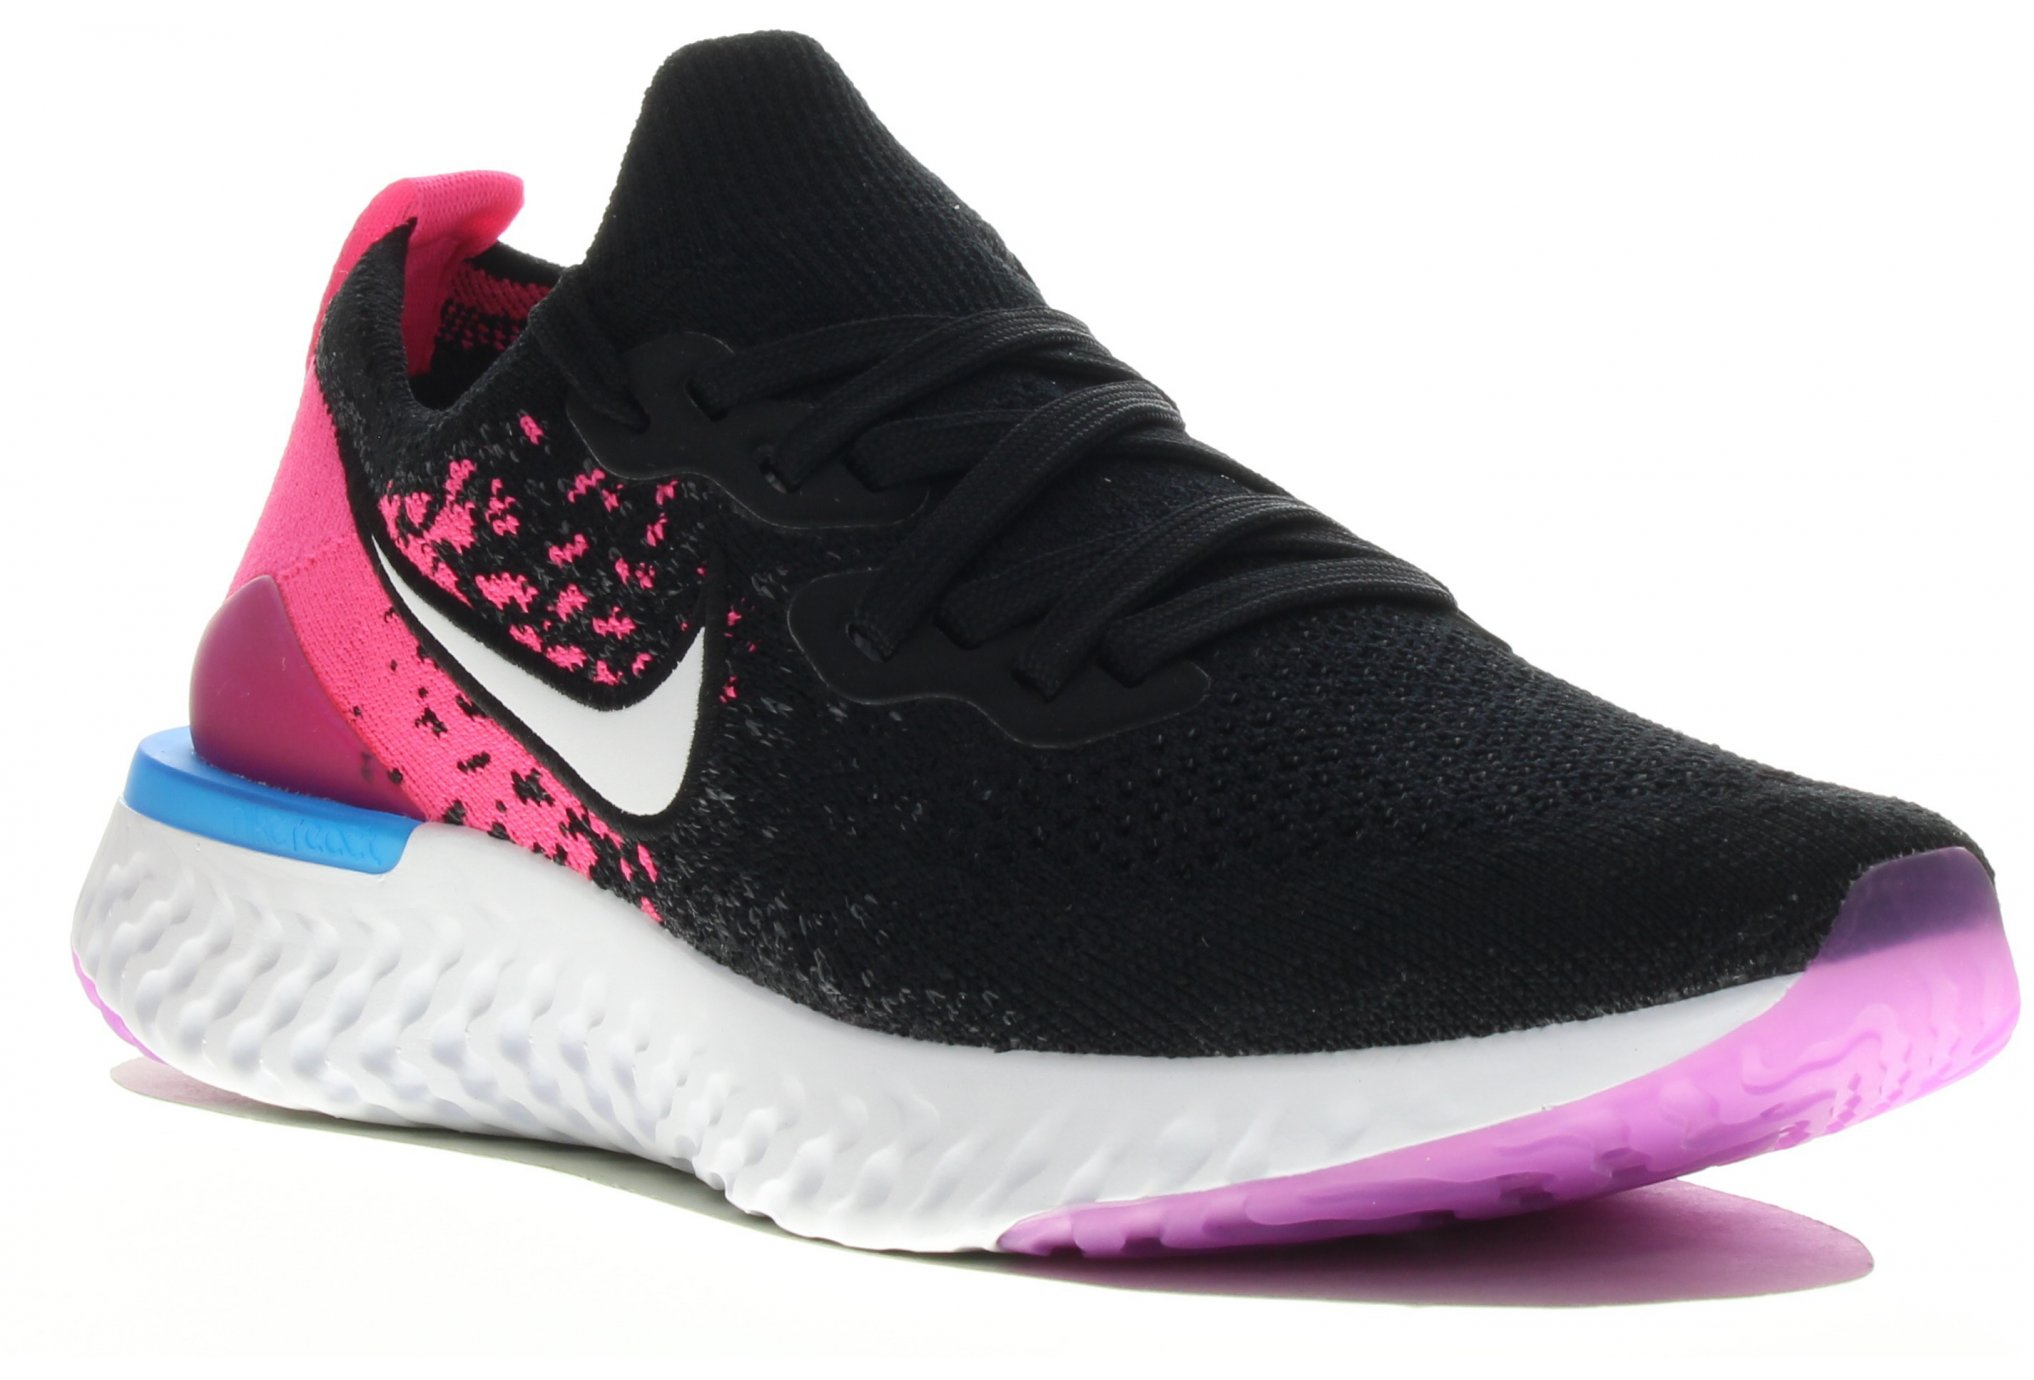 Nike Epic React Flyknit 2 GS Chaussures running femme